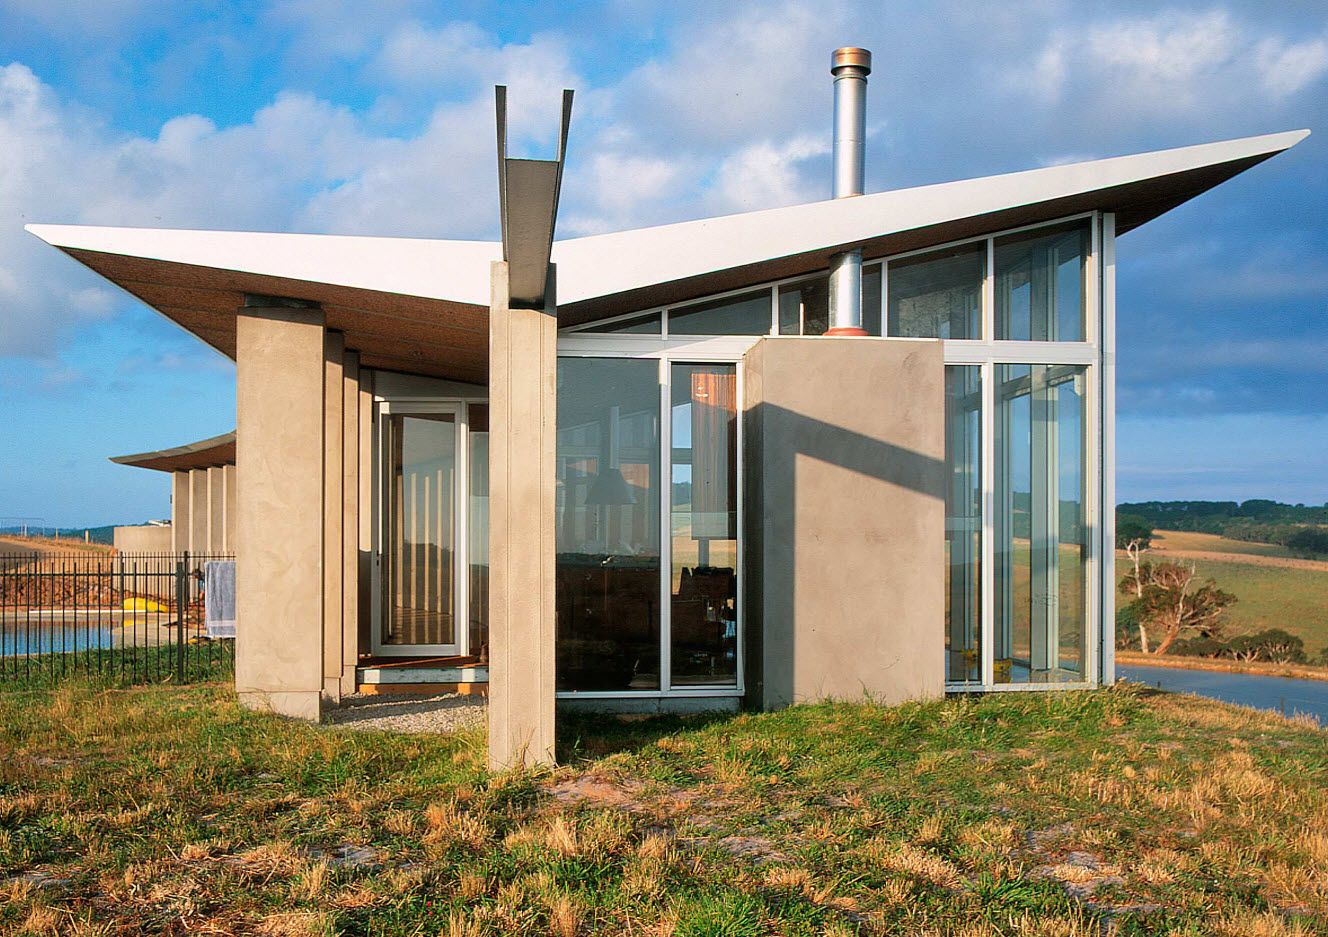 Futuristic design of glass and stone in the American South